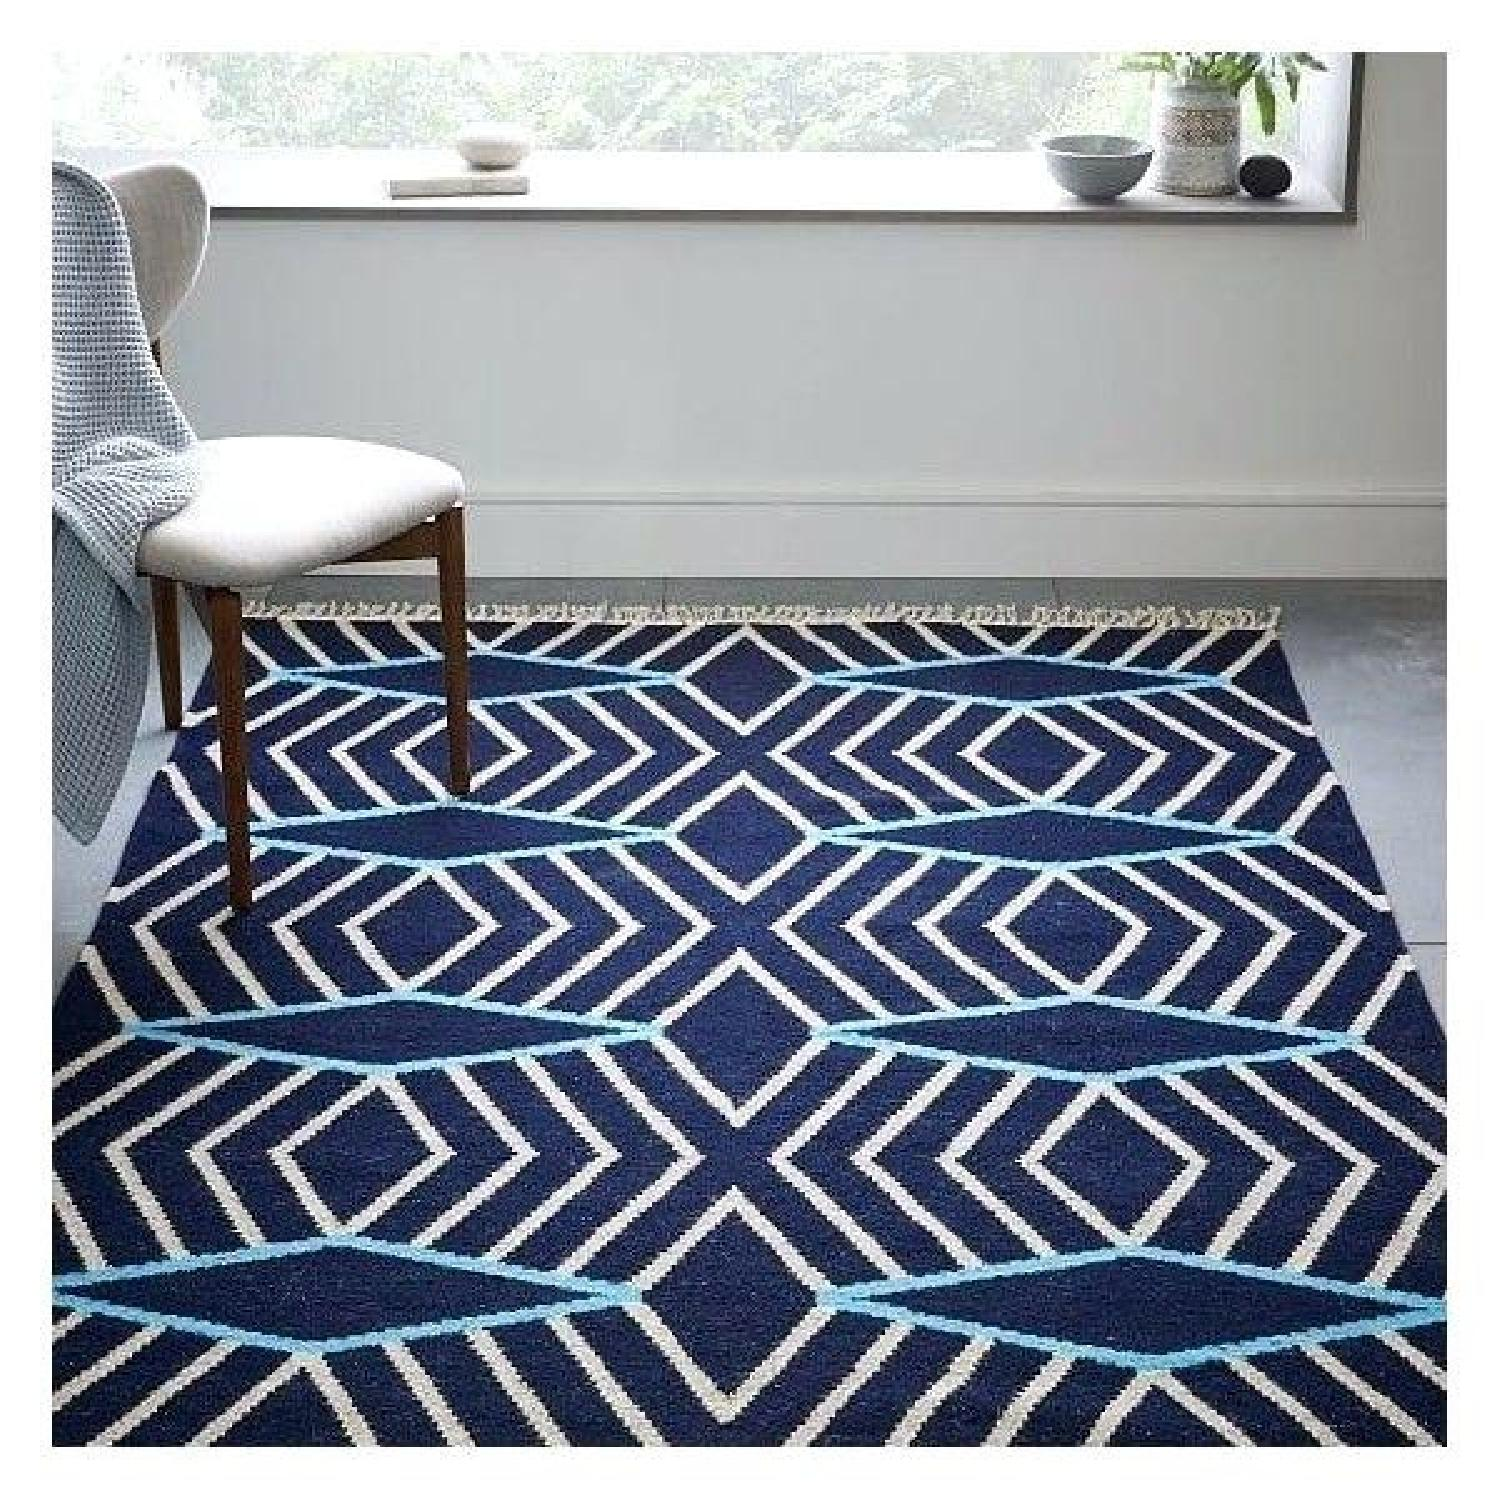 West Elm Kite Wool Kilim Rug - image-1